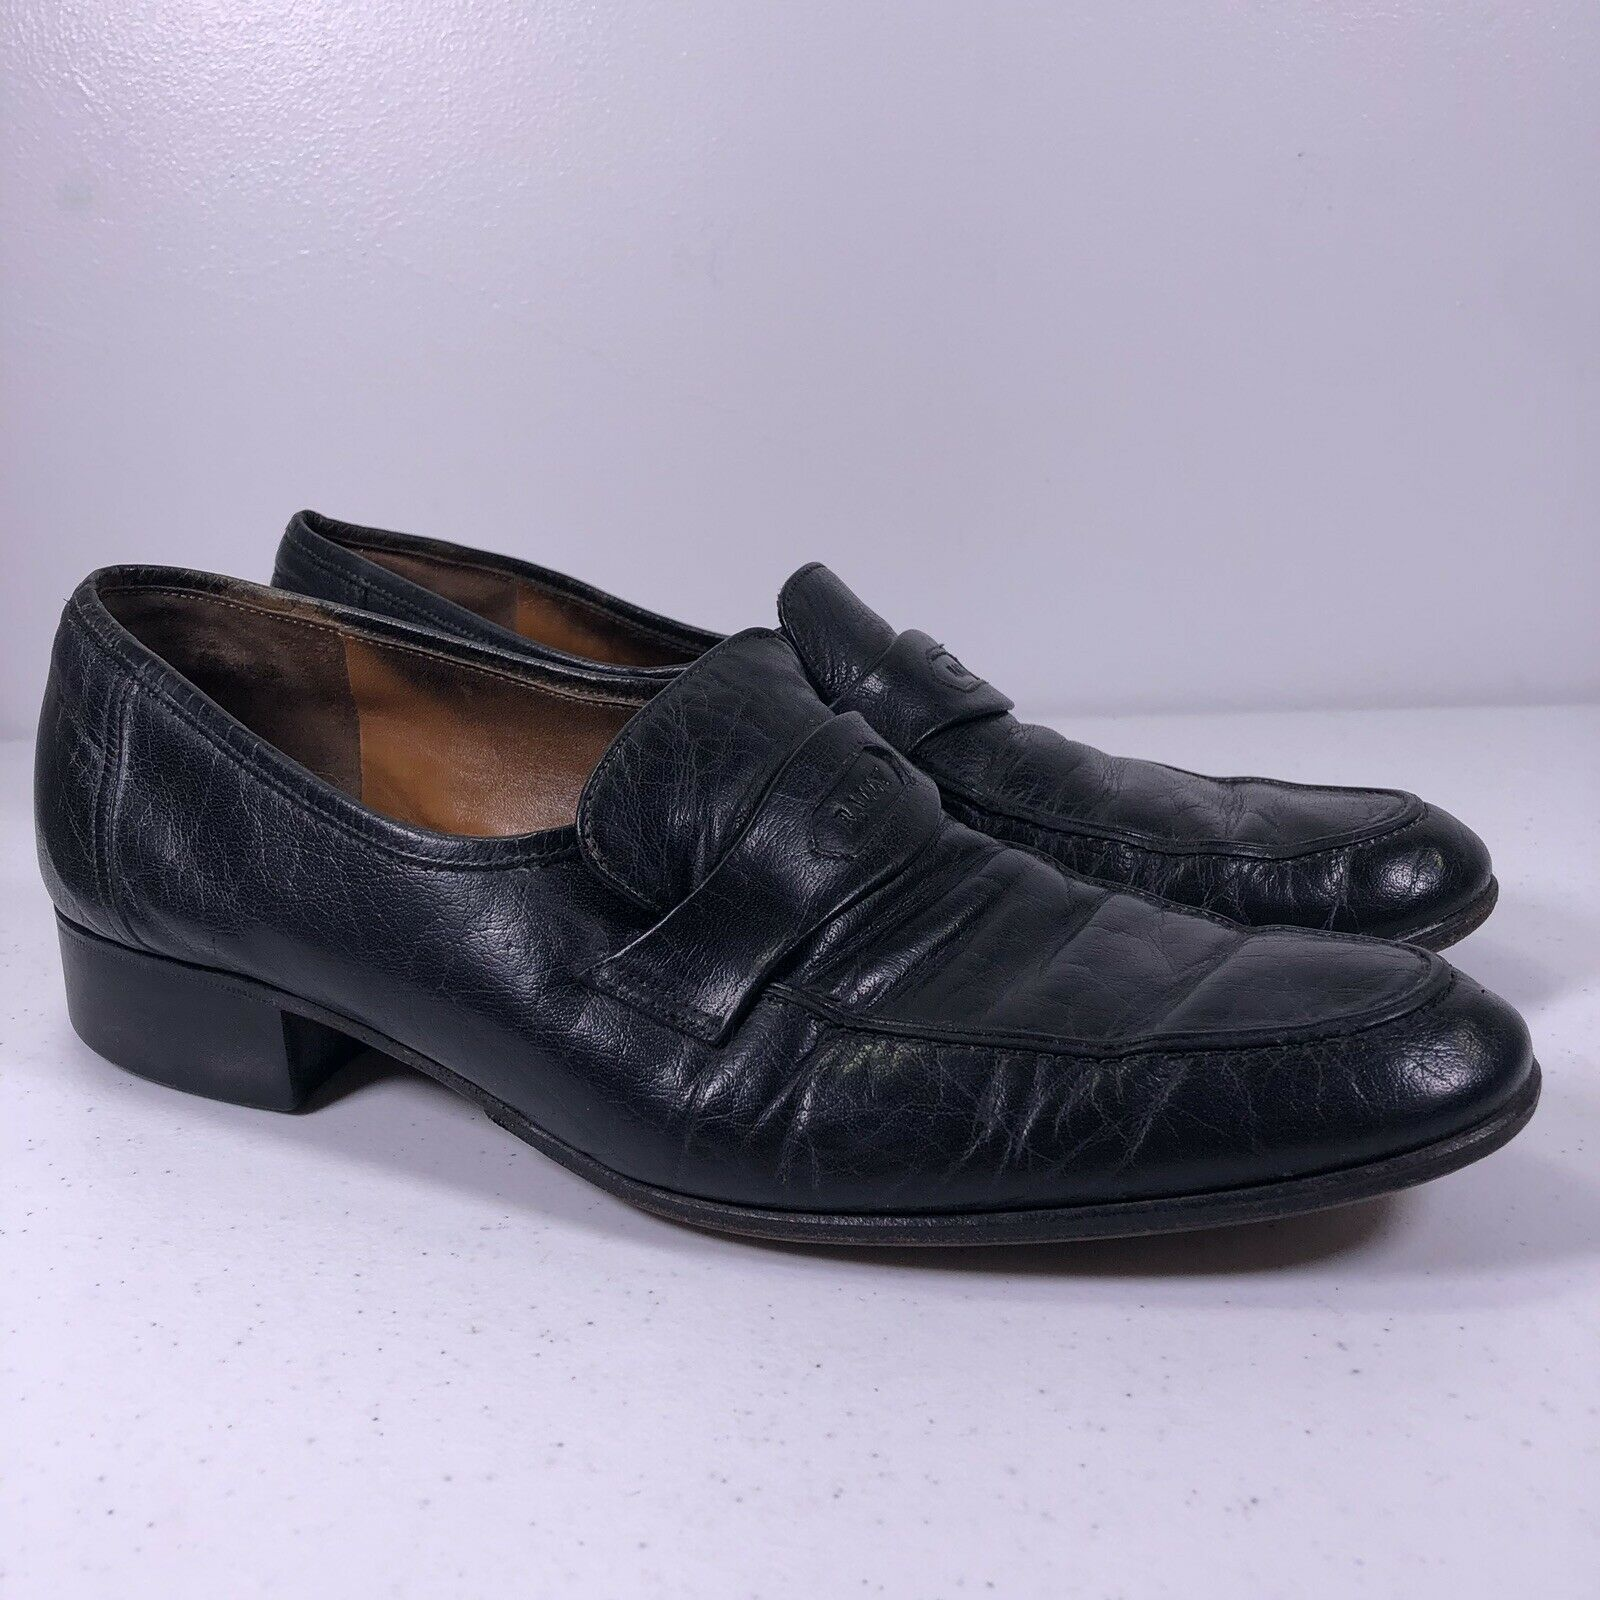 BALLY Mens size 10N Black Leather PENNY LOAFERS new shoes shoes Made In ITALY